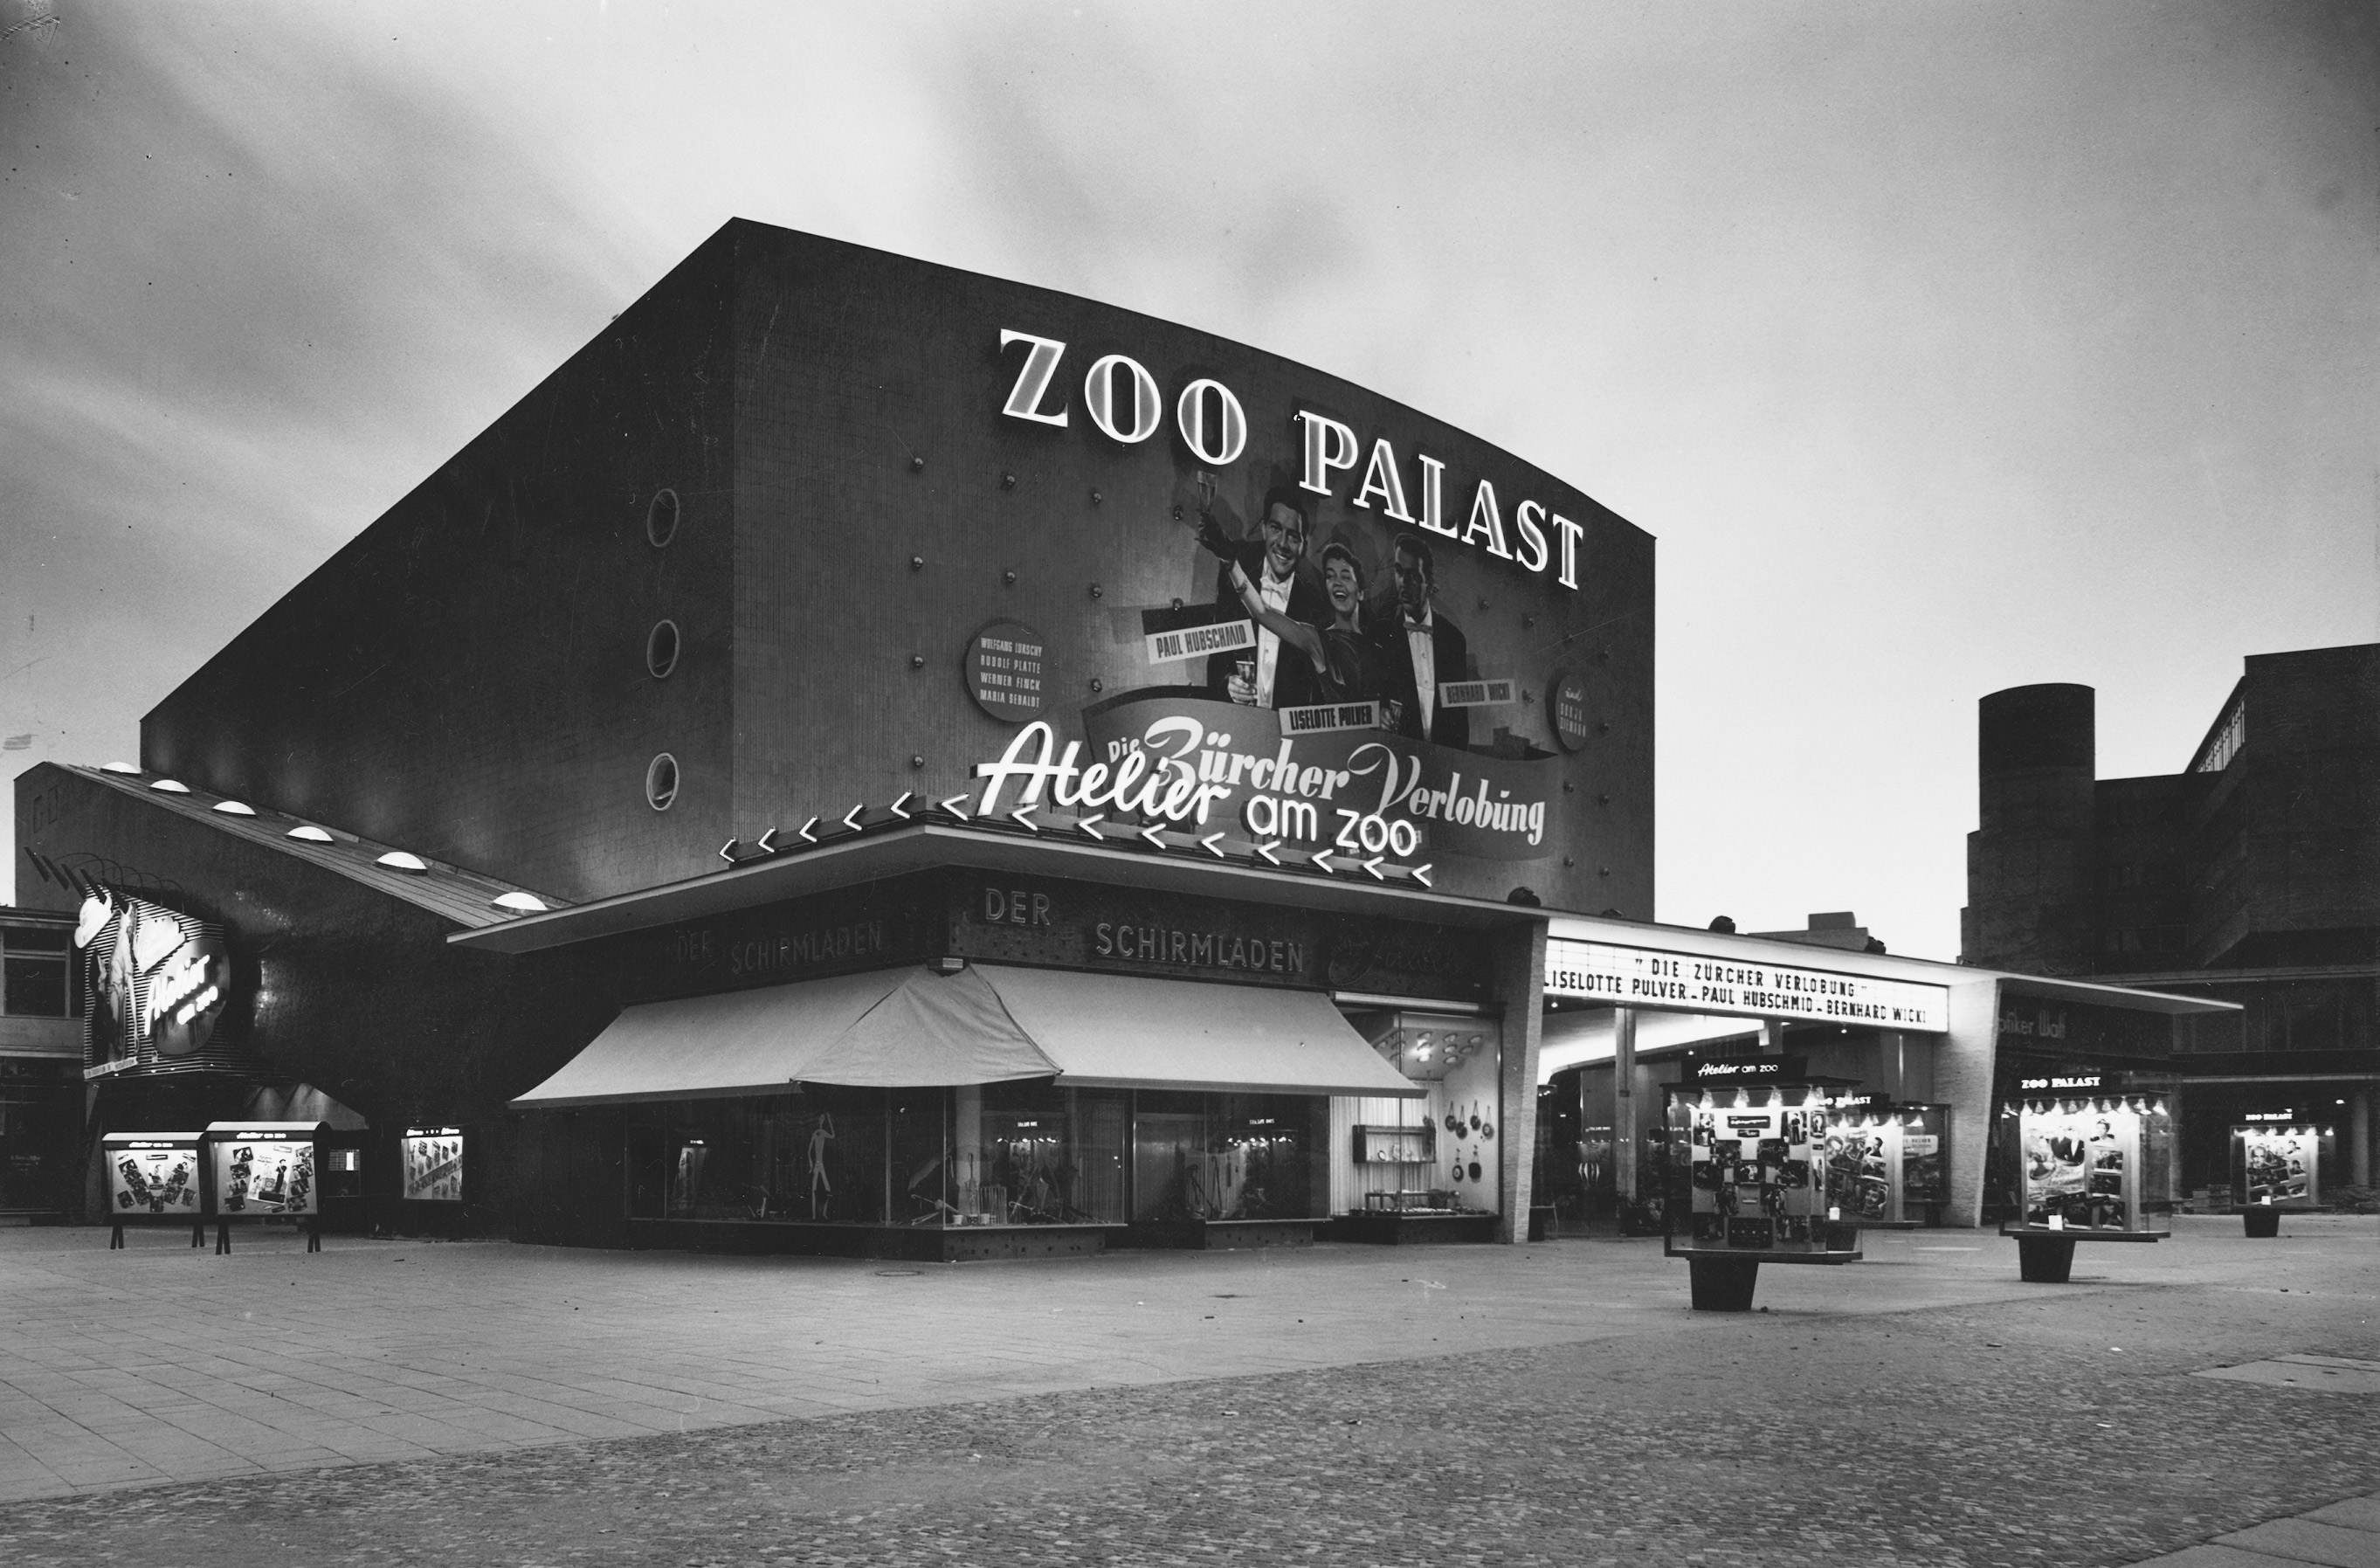 Black and white photo: façade with illuminated advertisements and film posters at night